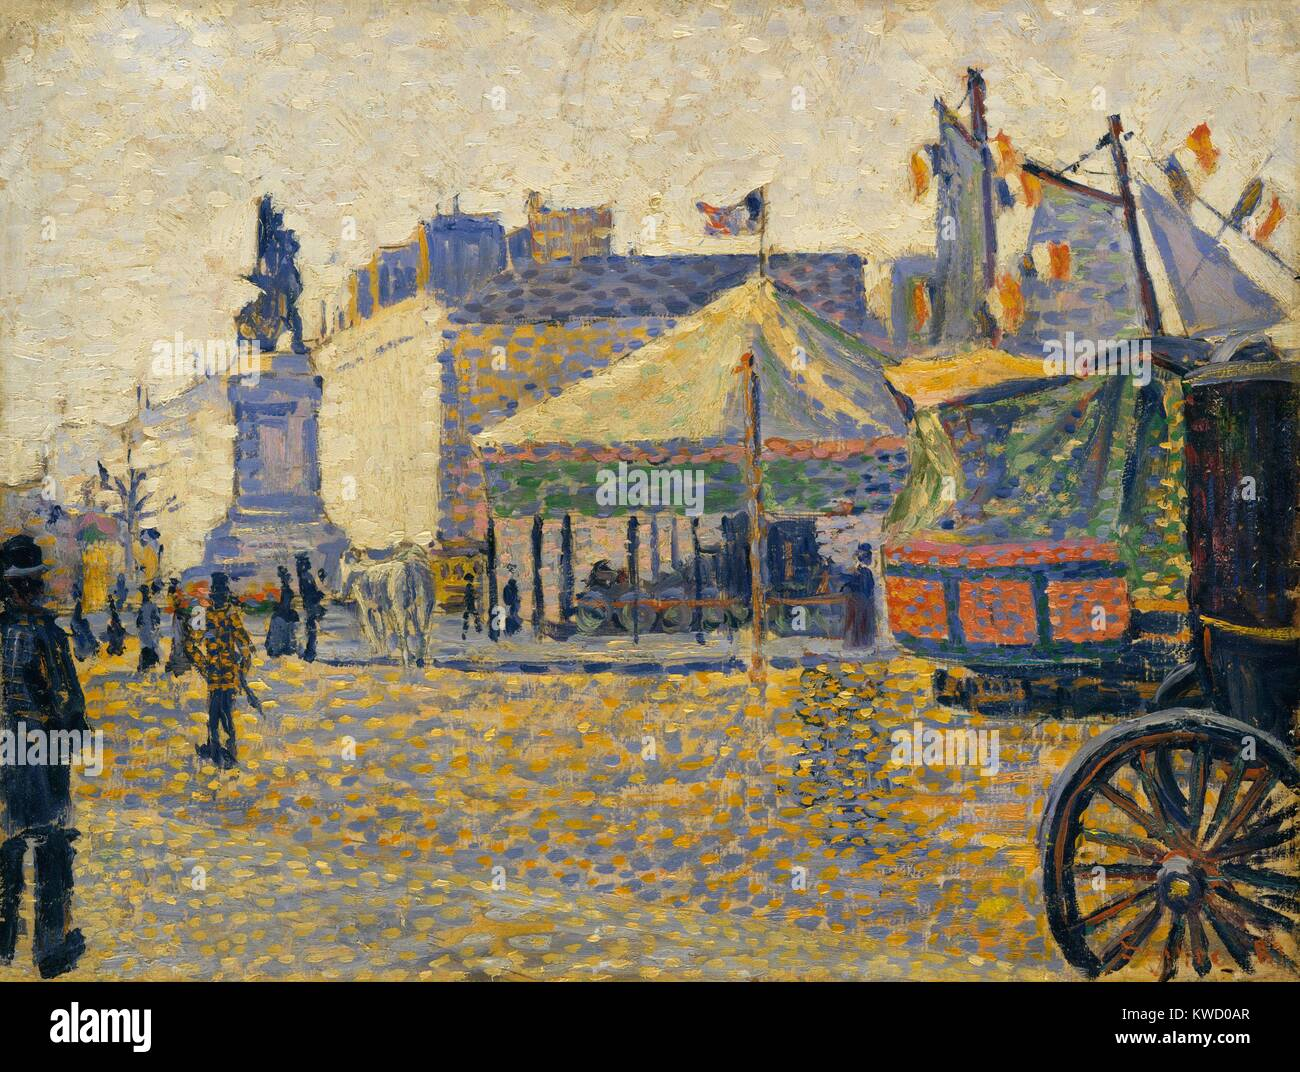 Place de Clichy, by Paul Signac, 1887, French Post-Impressionist painting, oil on wood. At age 18, when an architectural - Stock Image